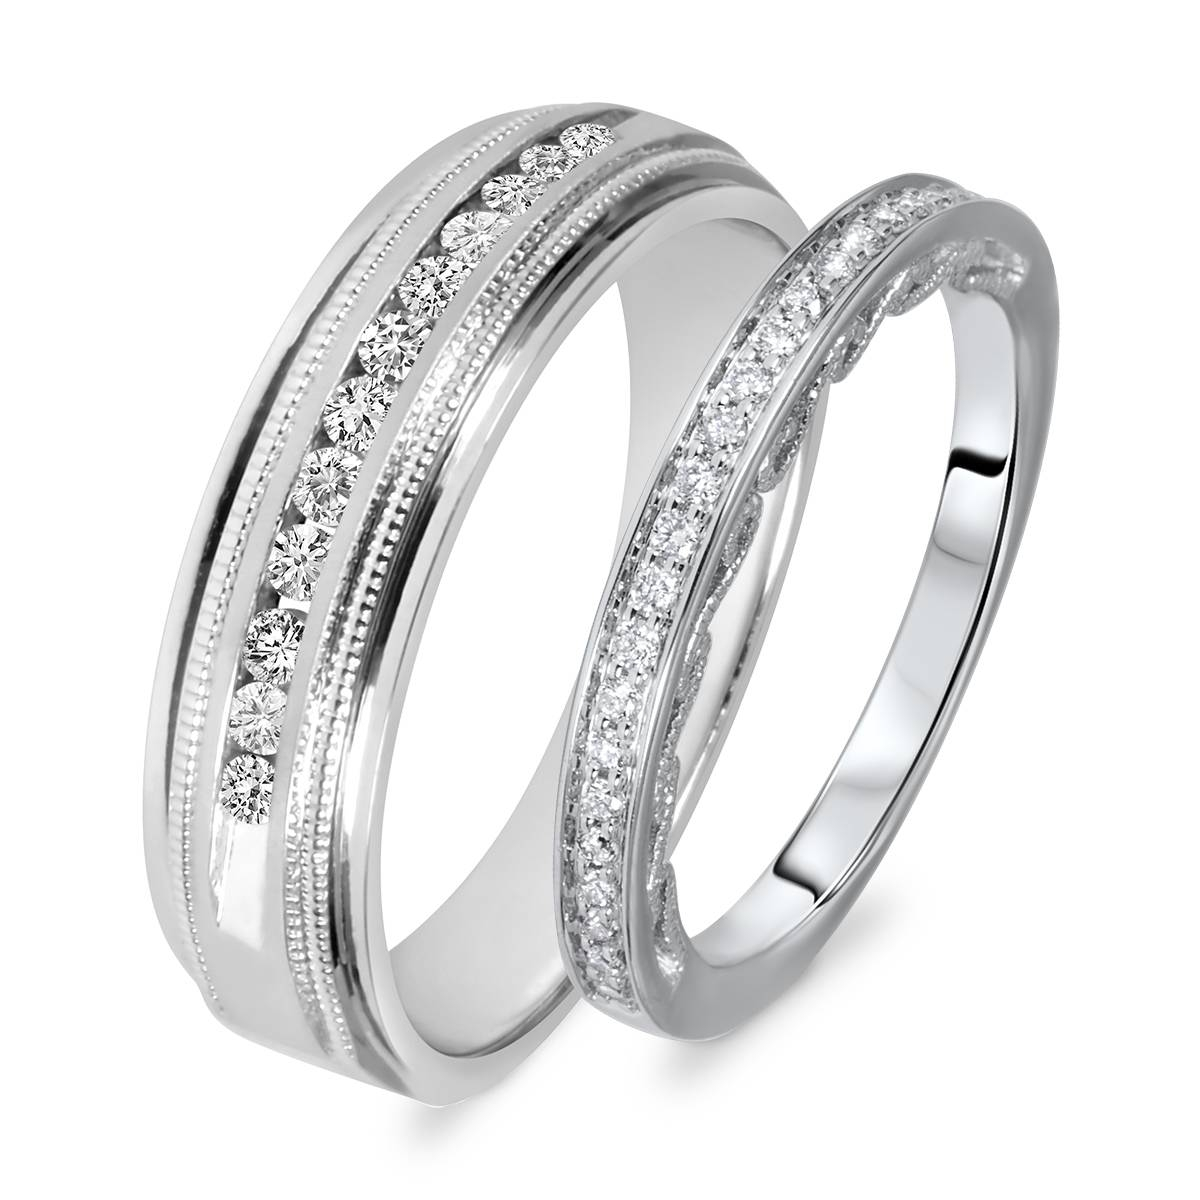 3/8 Carat T.w. Round Cut Diamond His And Hers Wedding Band Set 14K For His And Her Wedding Bands Sets (Gallery 42 of 339)